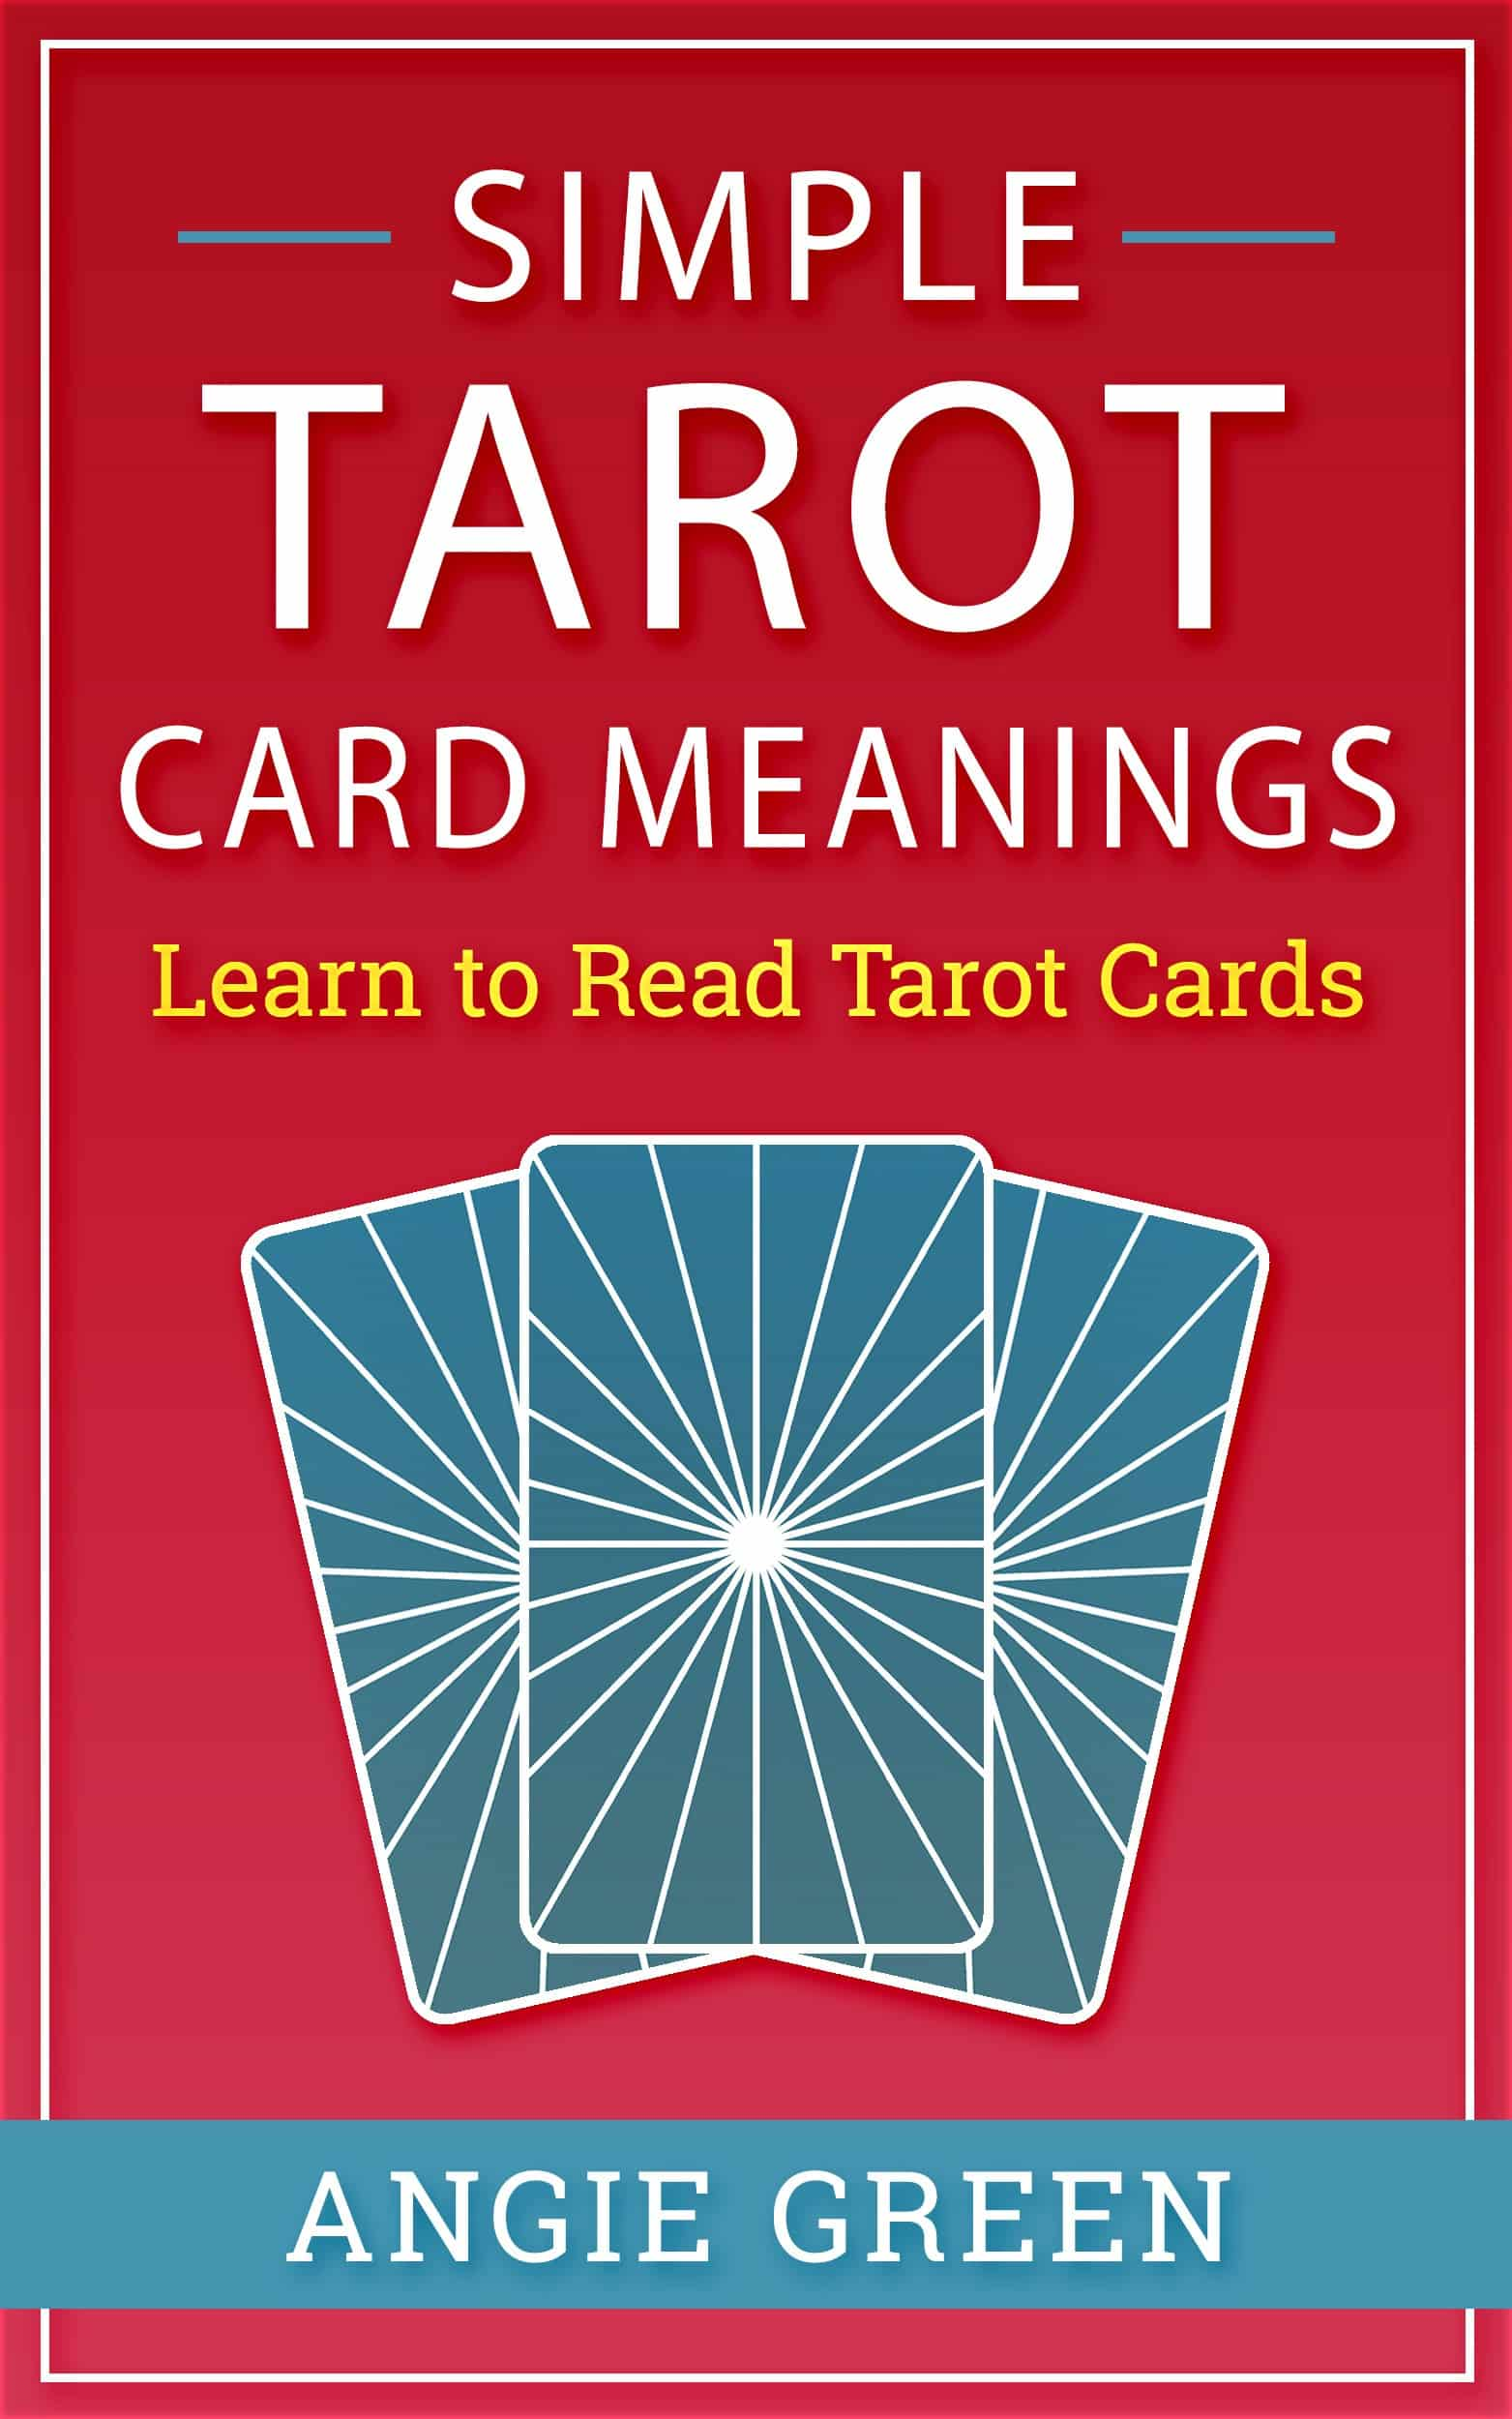 Do you want to read tarot cards - without memorizing or struggling to remember the tarot card meanings? Get this book, Simple Tarot Card Meanings, from The Simple Tarot today!